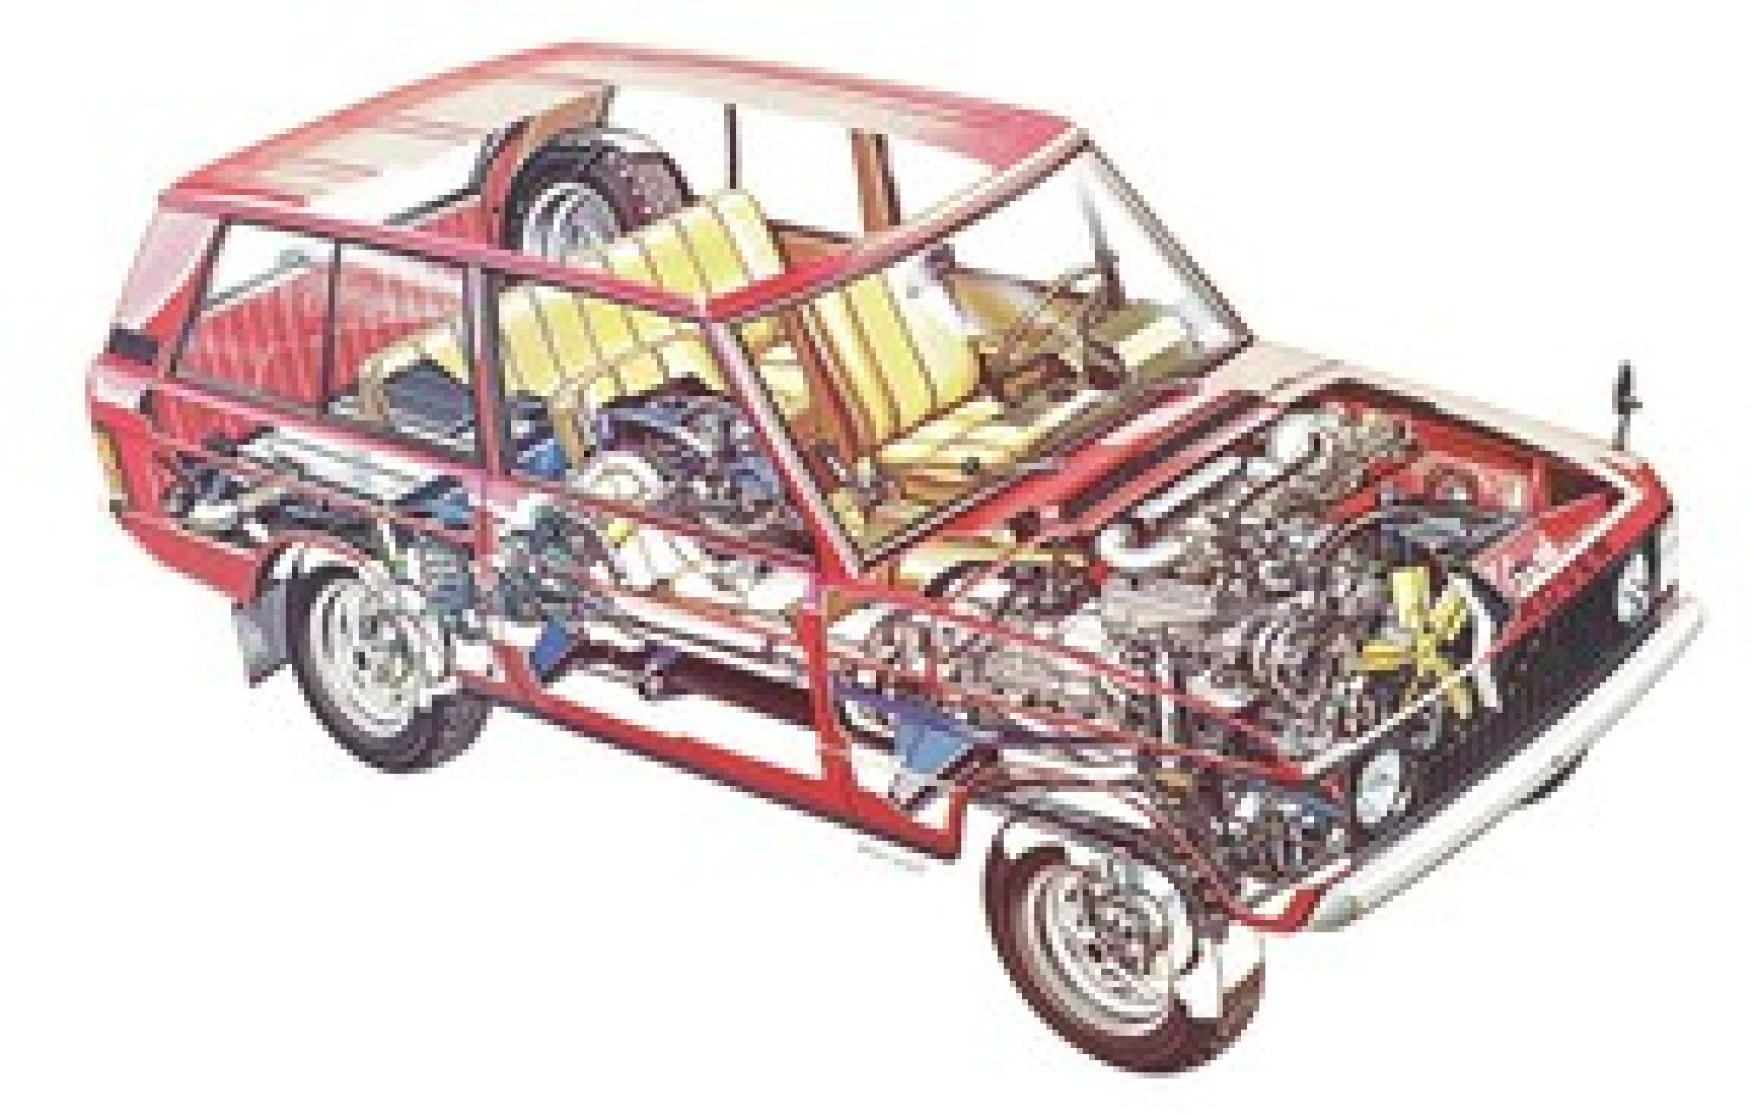 A cutaway illustration of a classic Range Rover